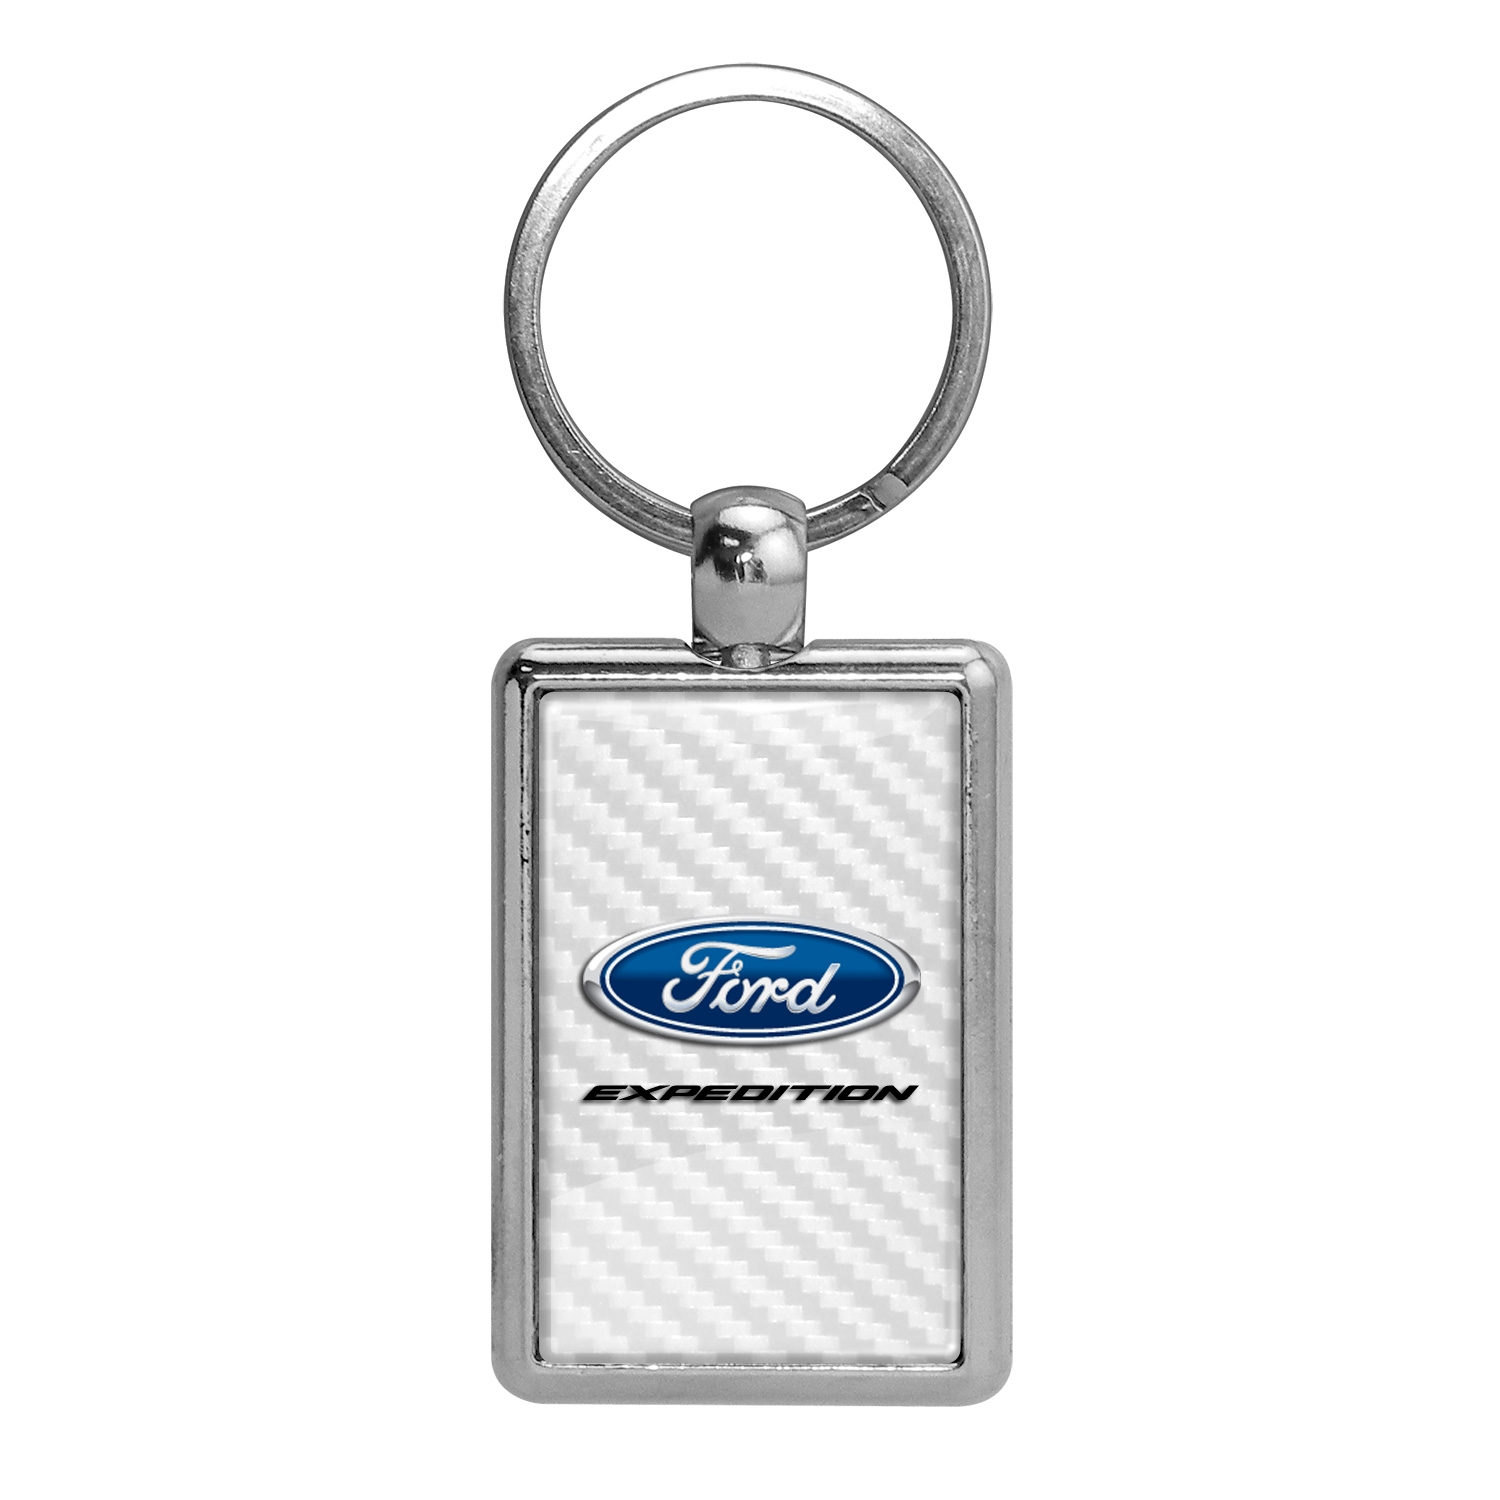 Ford Expedition White Carbon Fiber Backing Brush Rectangle Metal Key Chain